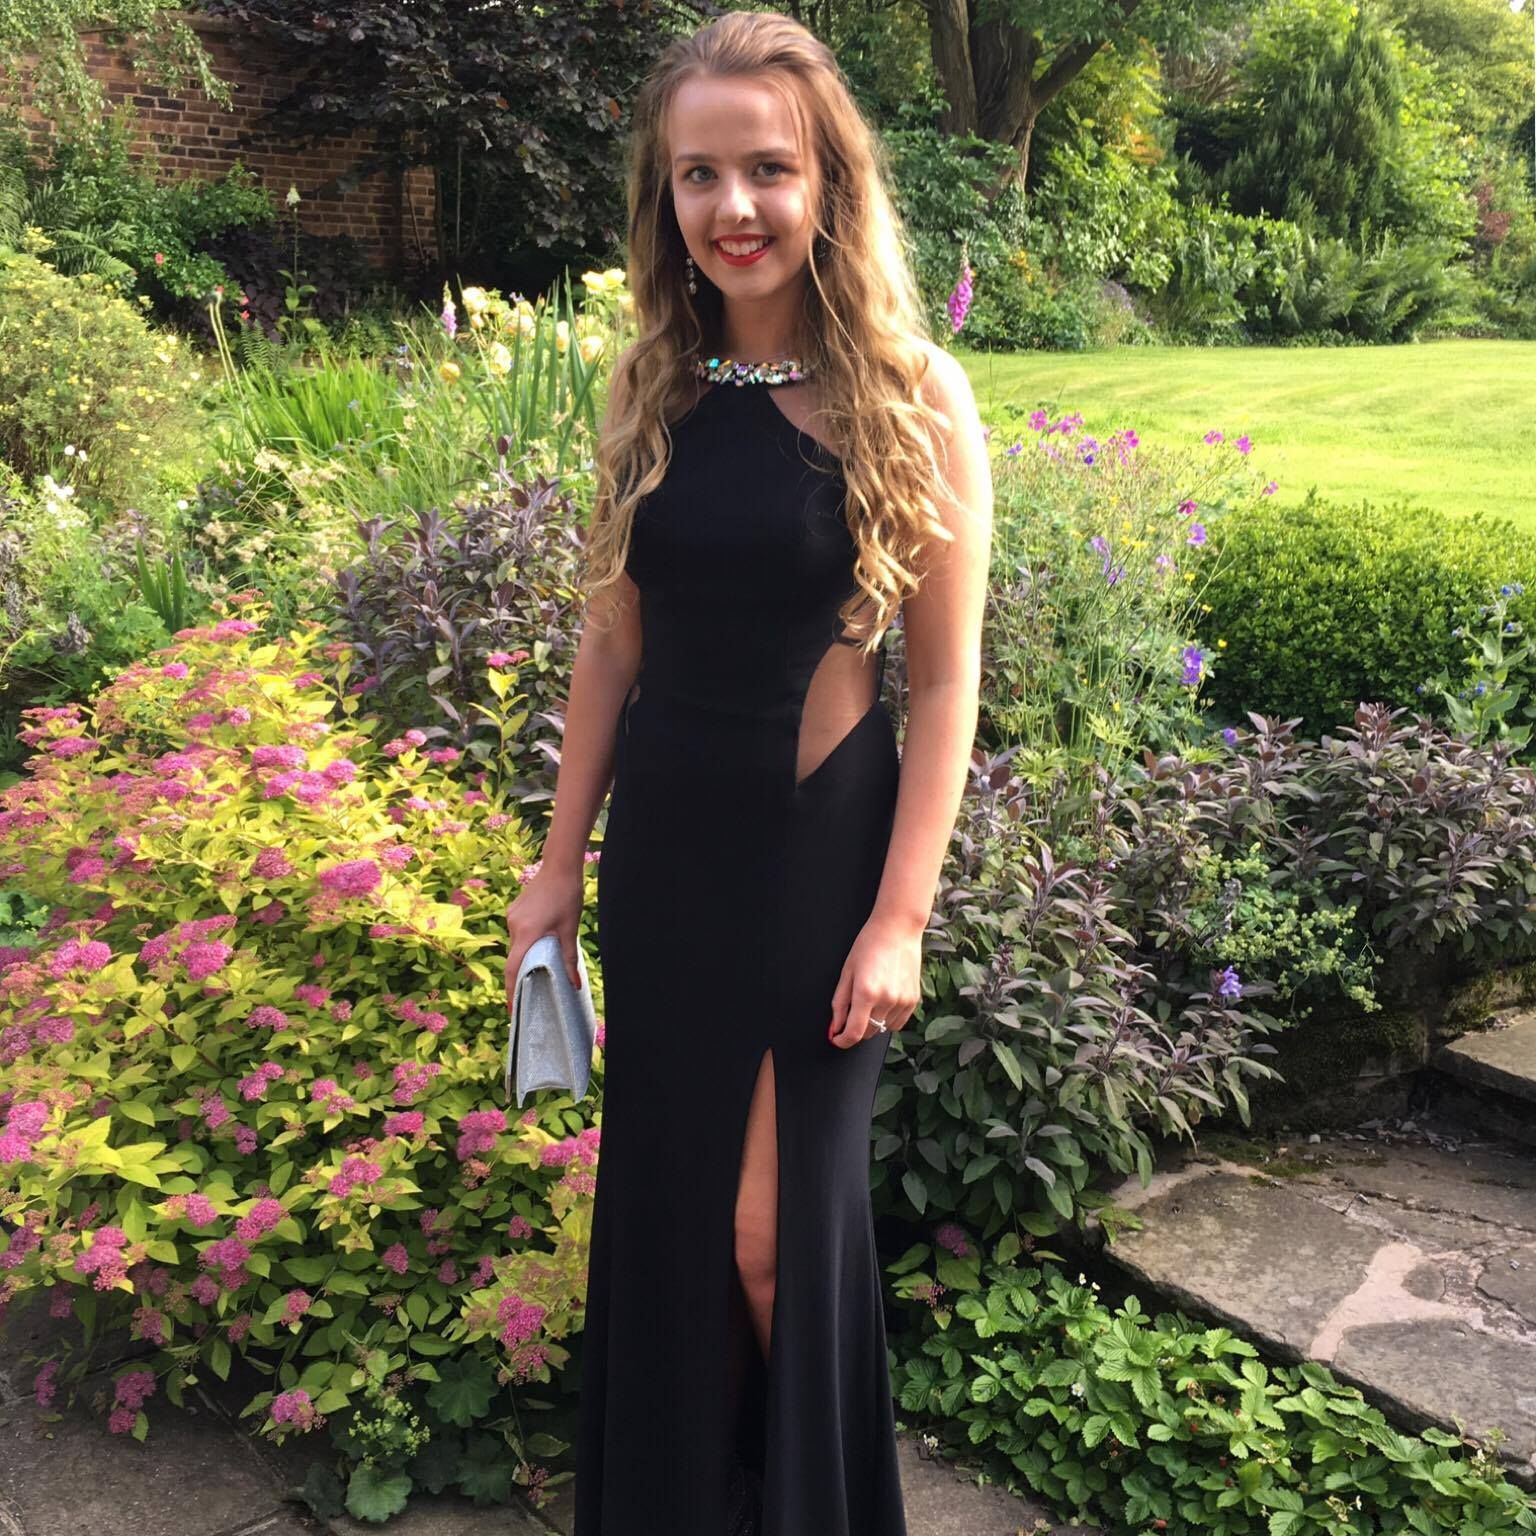 Wonderful service . Comes as a great package with the choice of dresses and the tailor next door to make them fit perfectly. A very happy Prom Girl A*